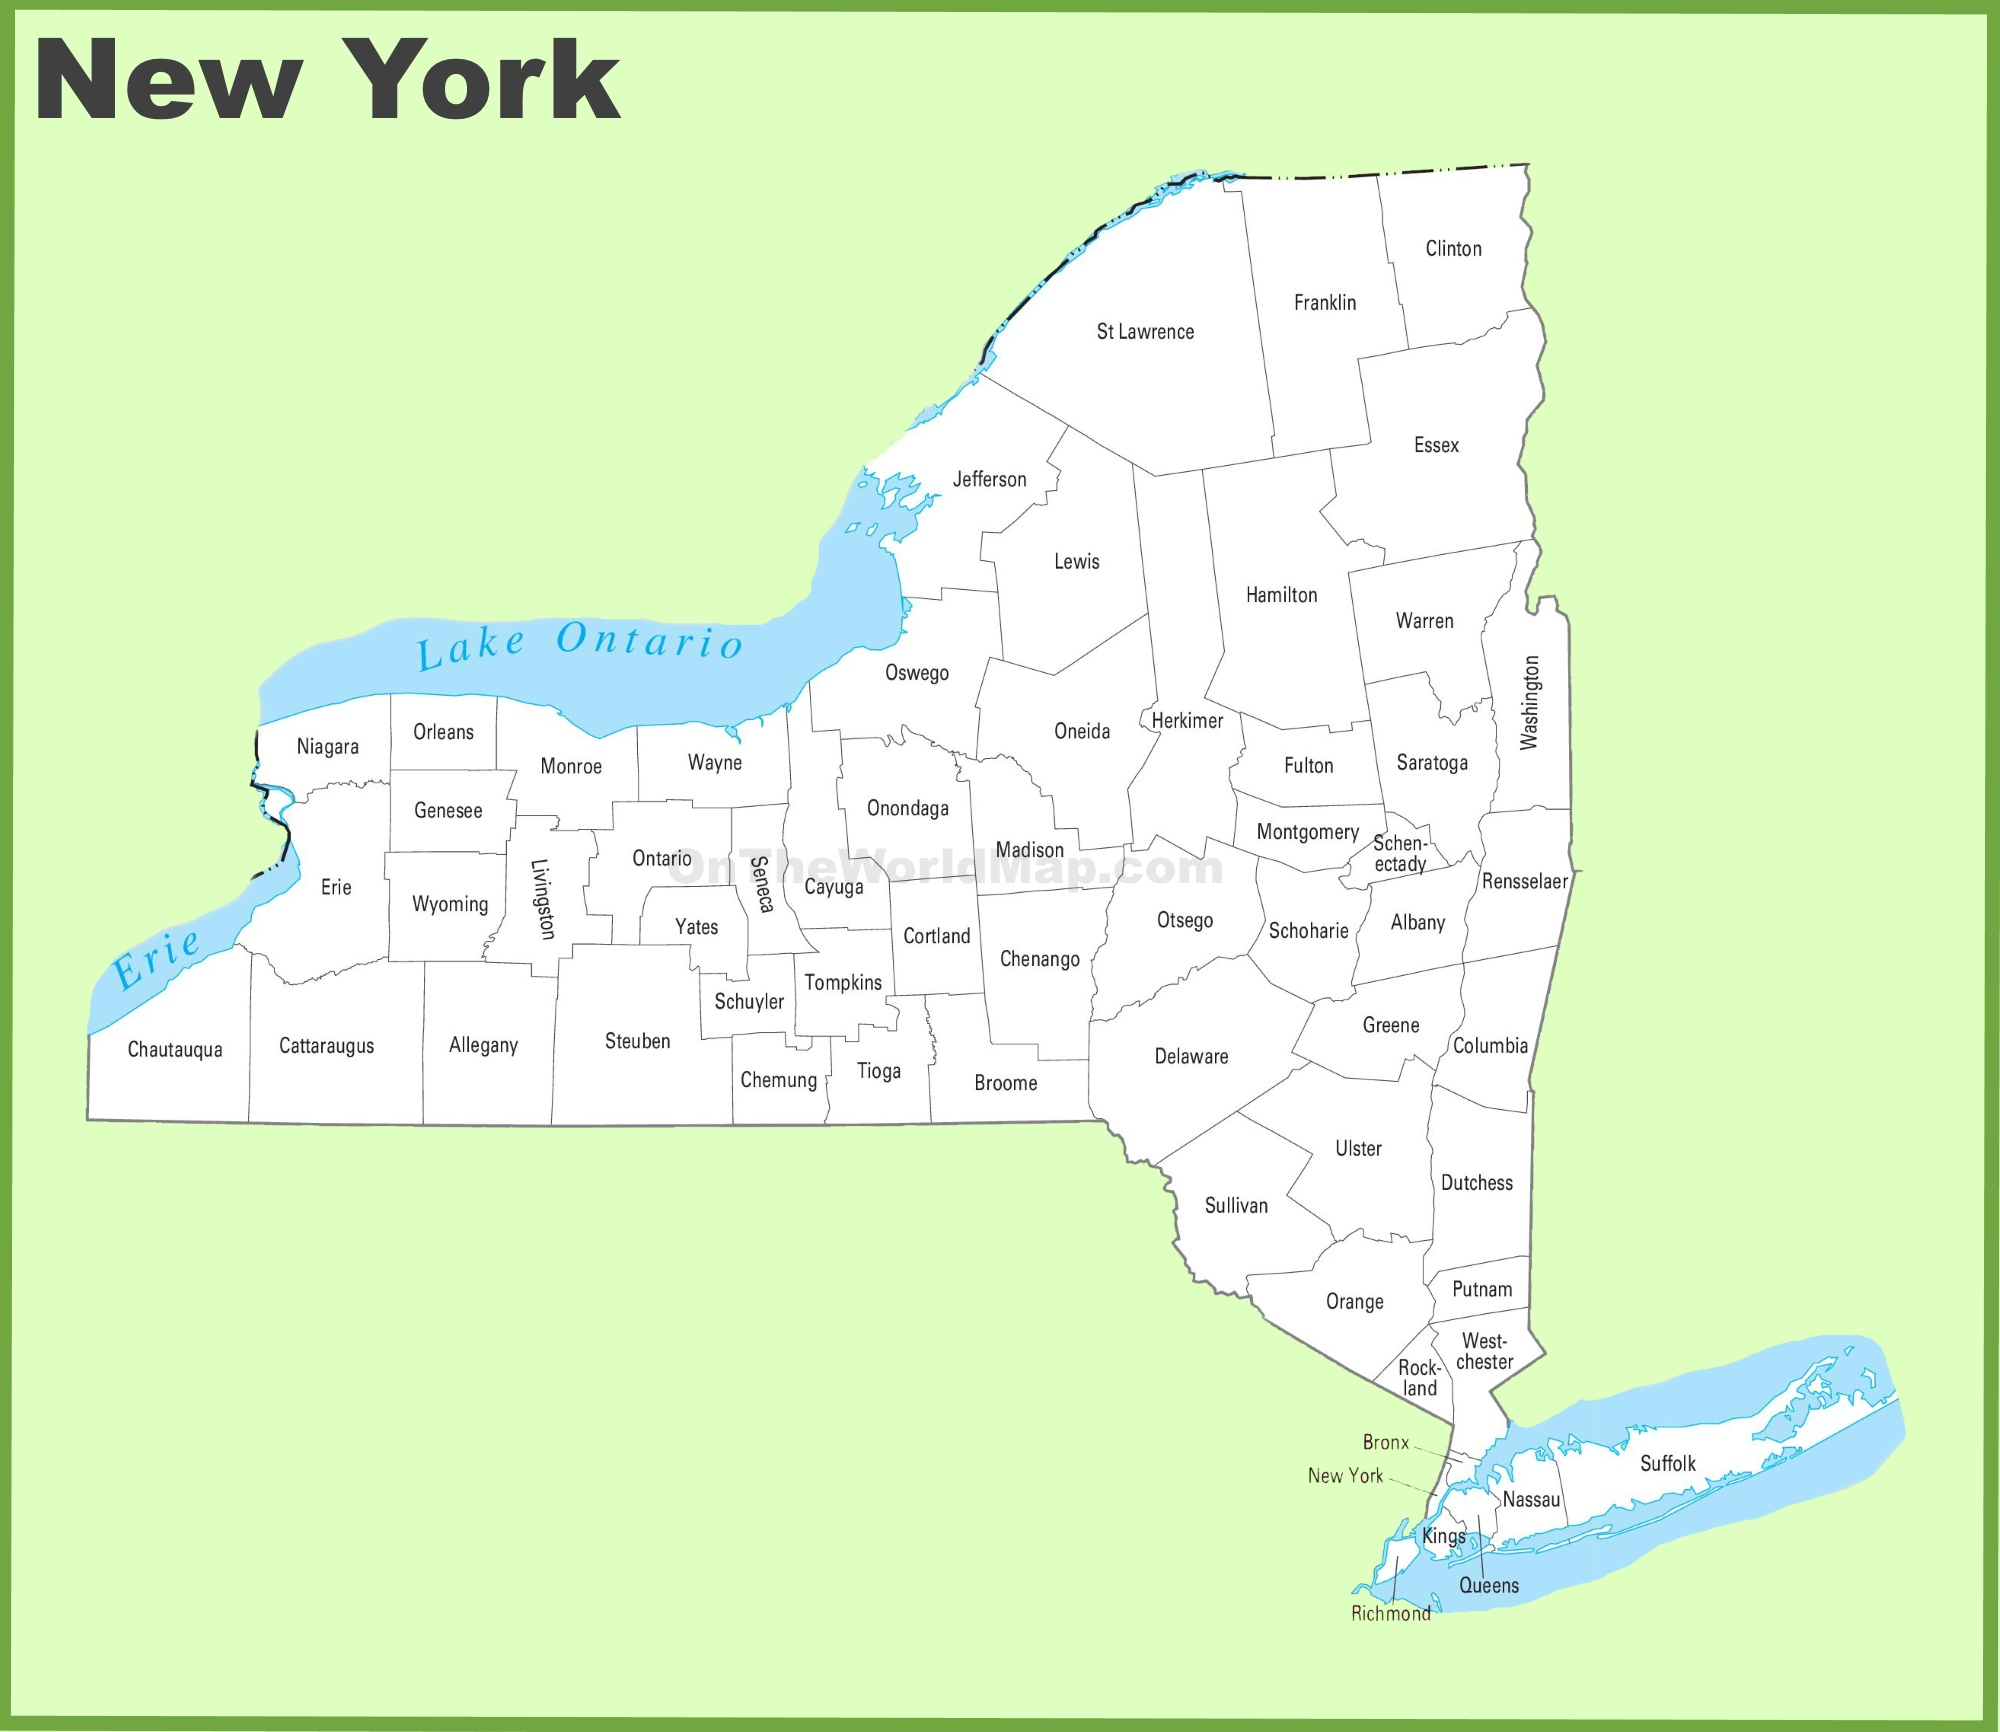 New York State Maps | Usa | Maps Of New York (Ny) - Road Map Of New York State Printable